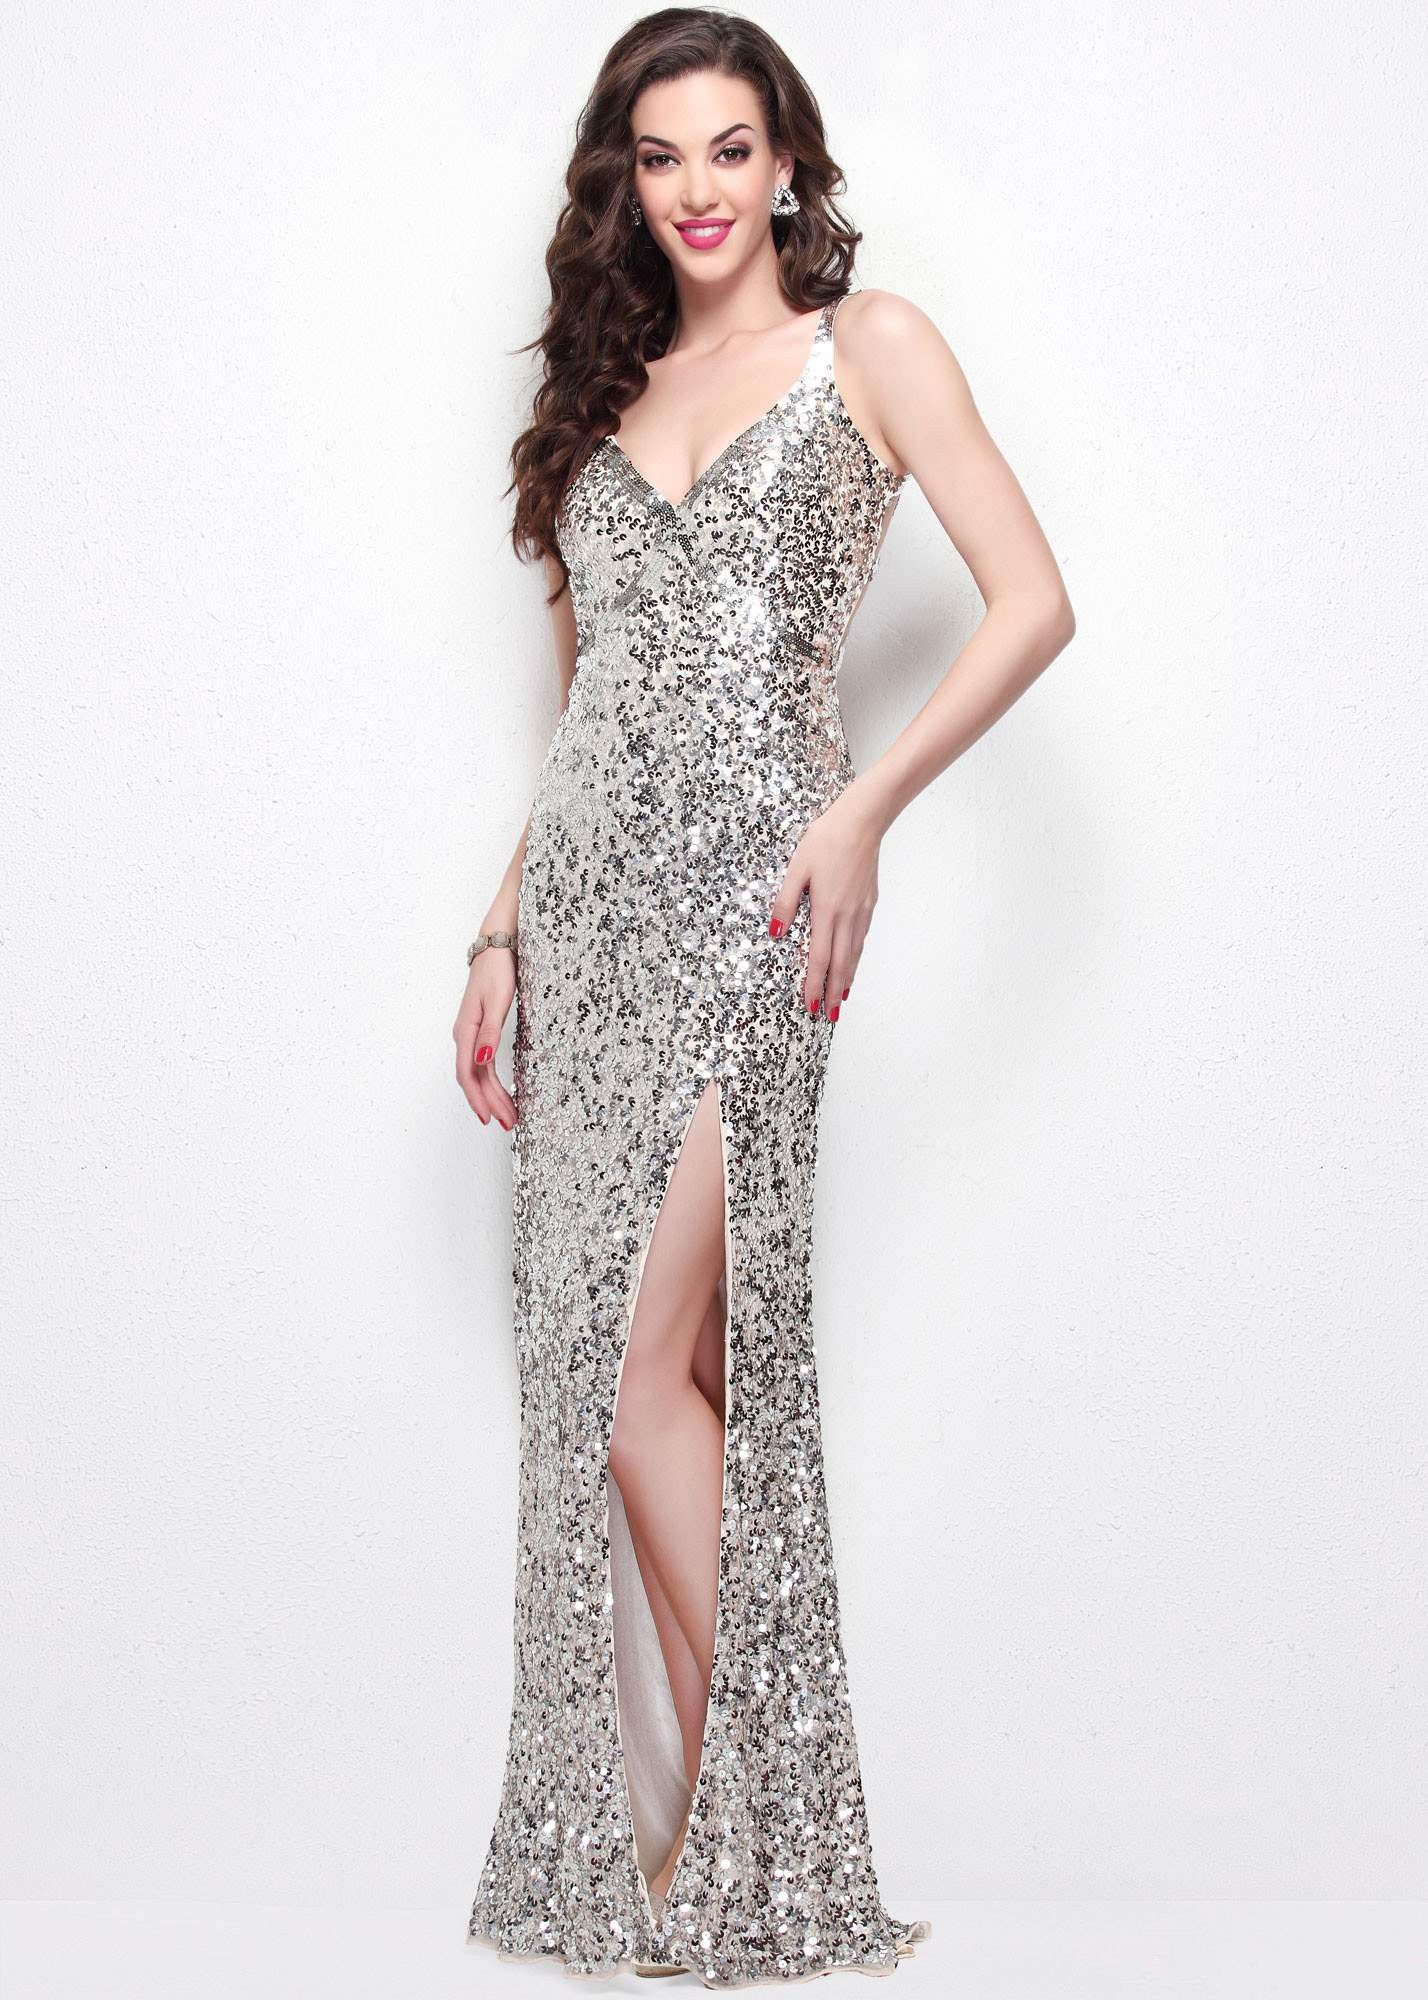 Primavera sparkly sequin cut out open back gown sequins nude